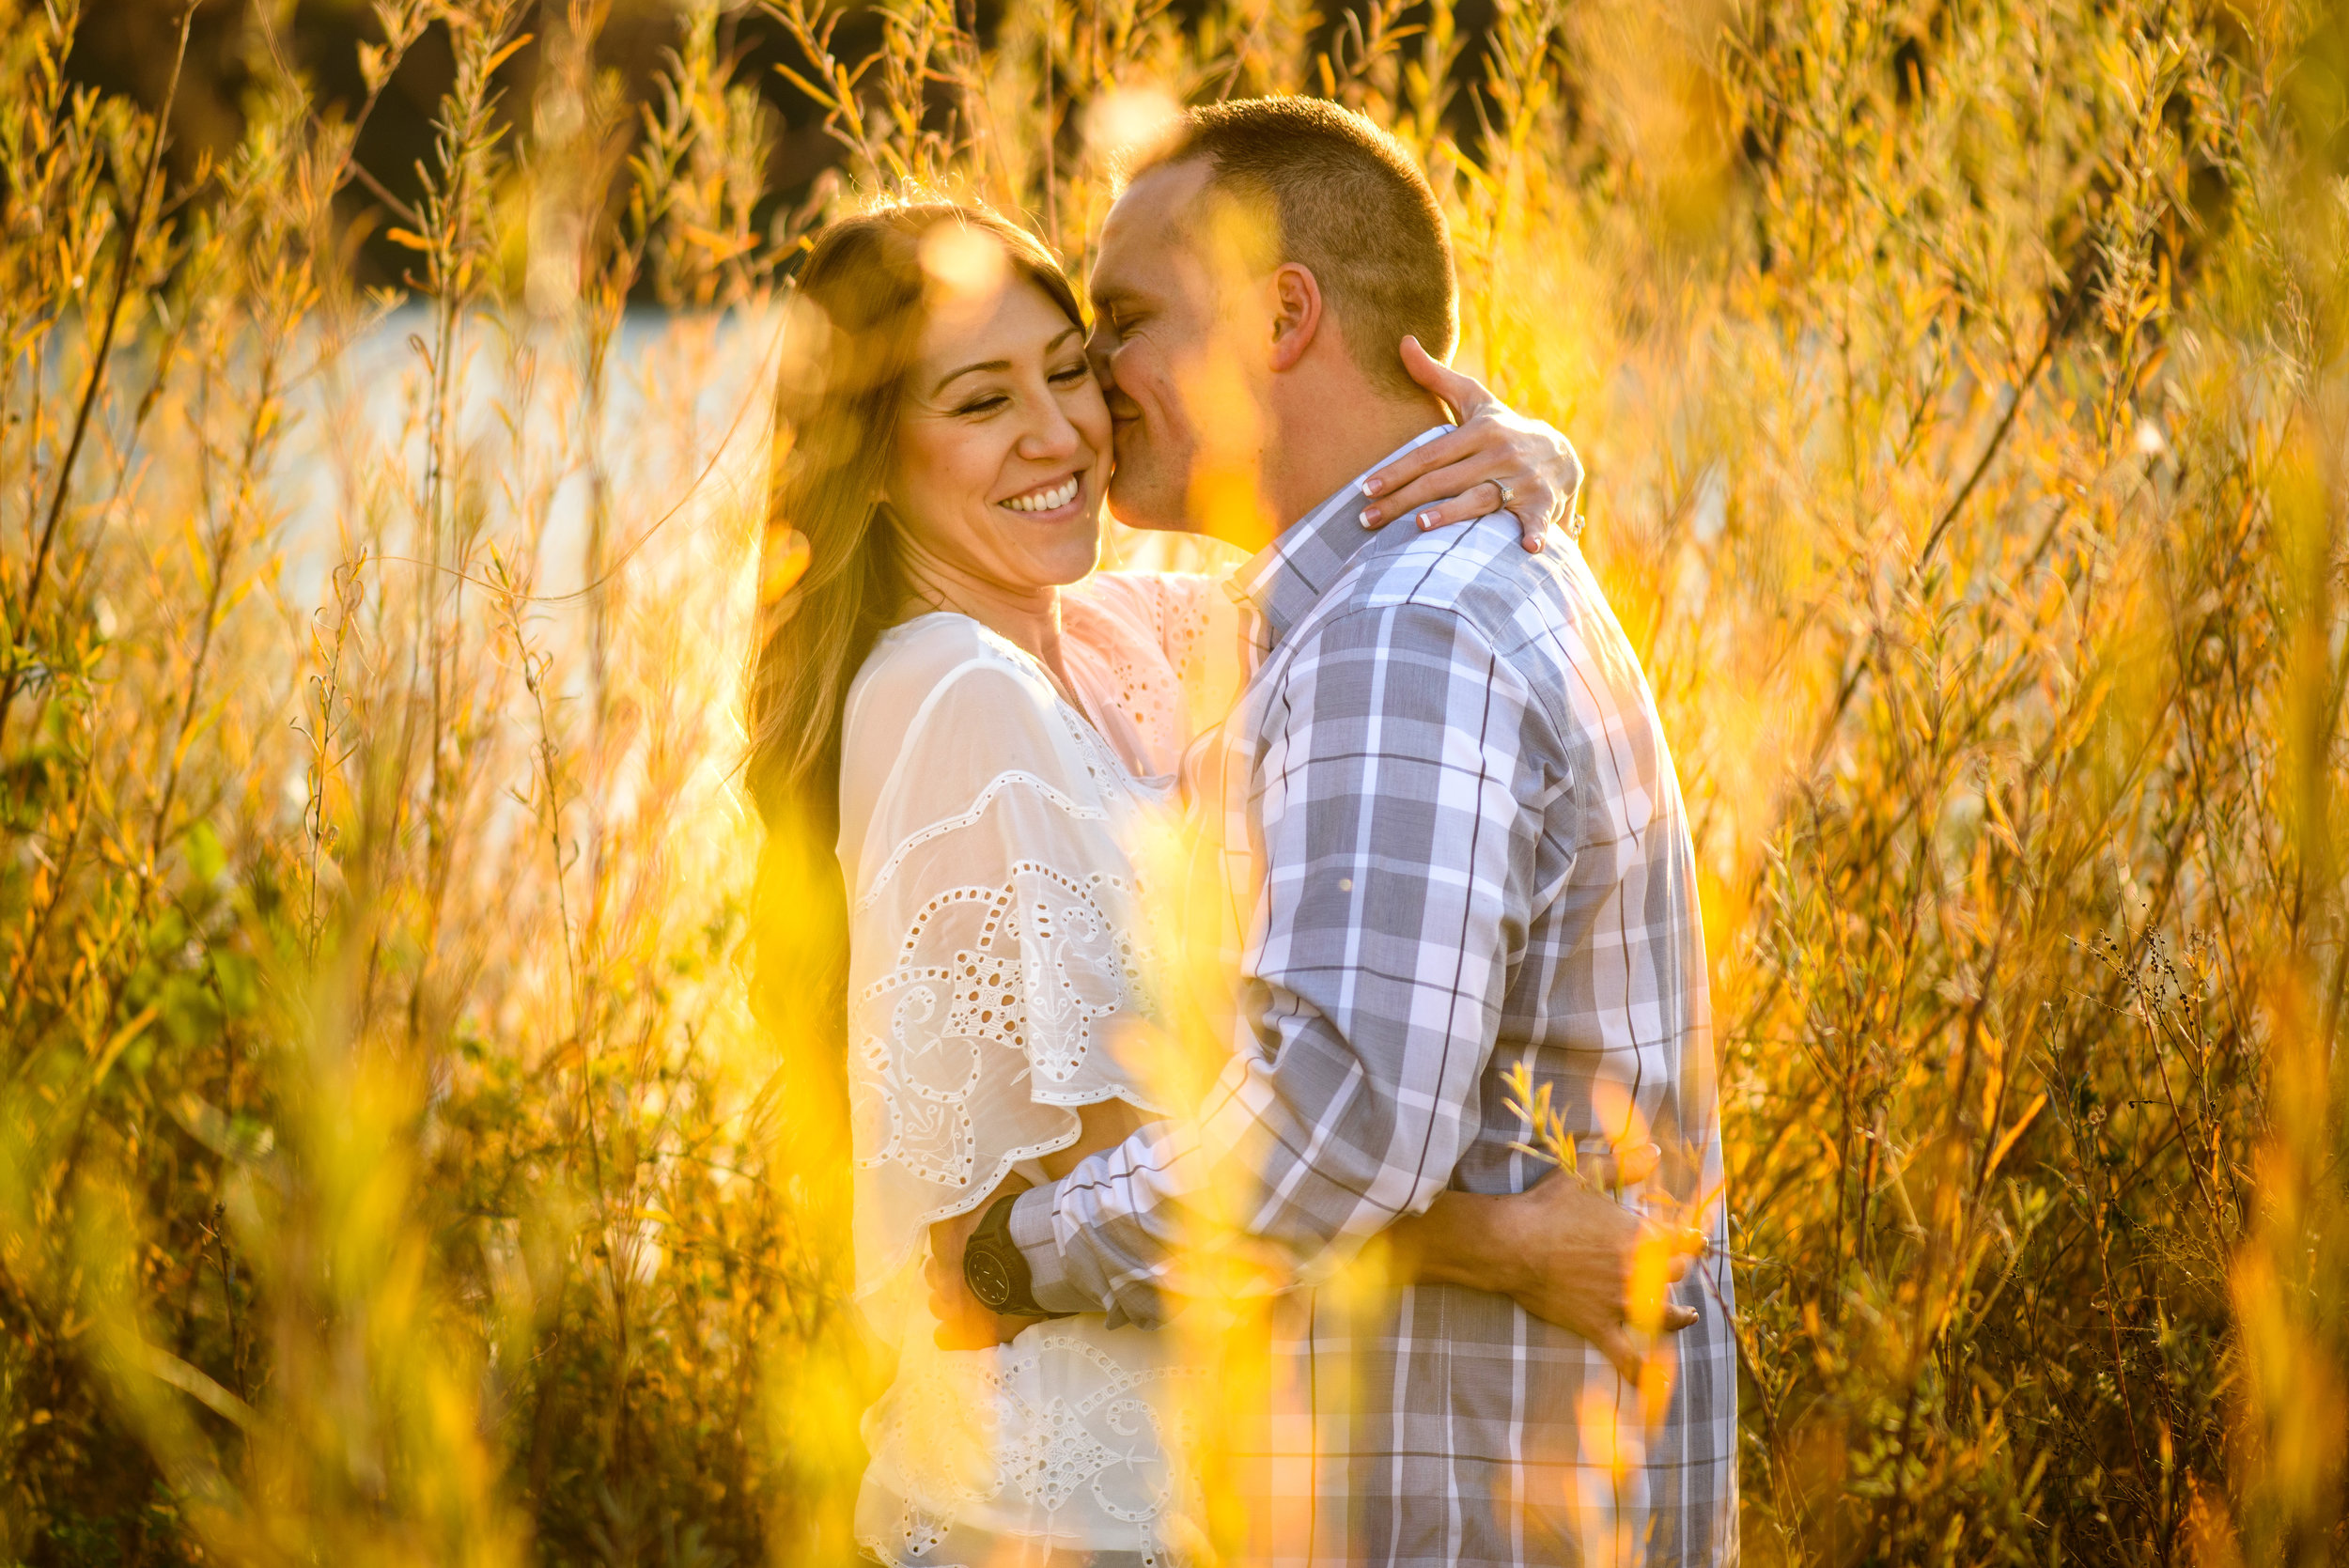 nicole-luke-006-sacramento-engagement-wedding-photographer-katherine-nicole-photography.JPG